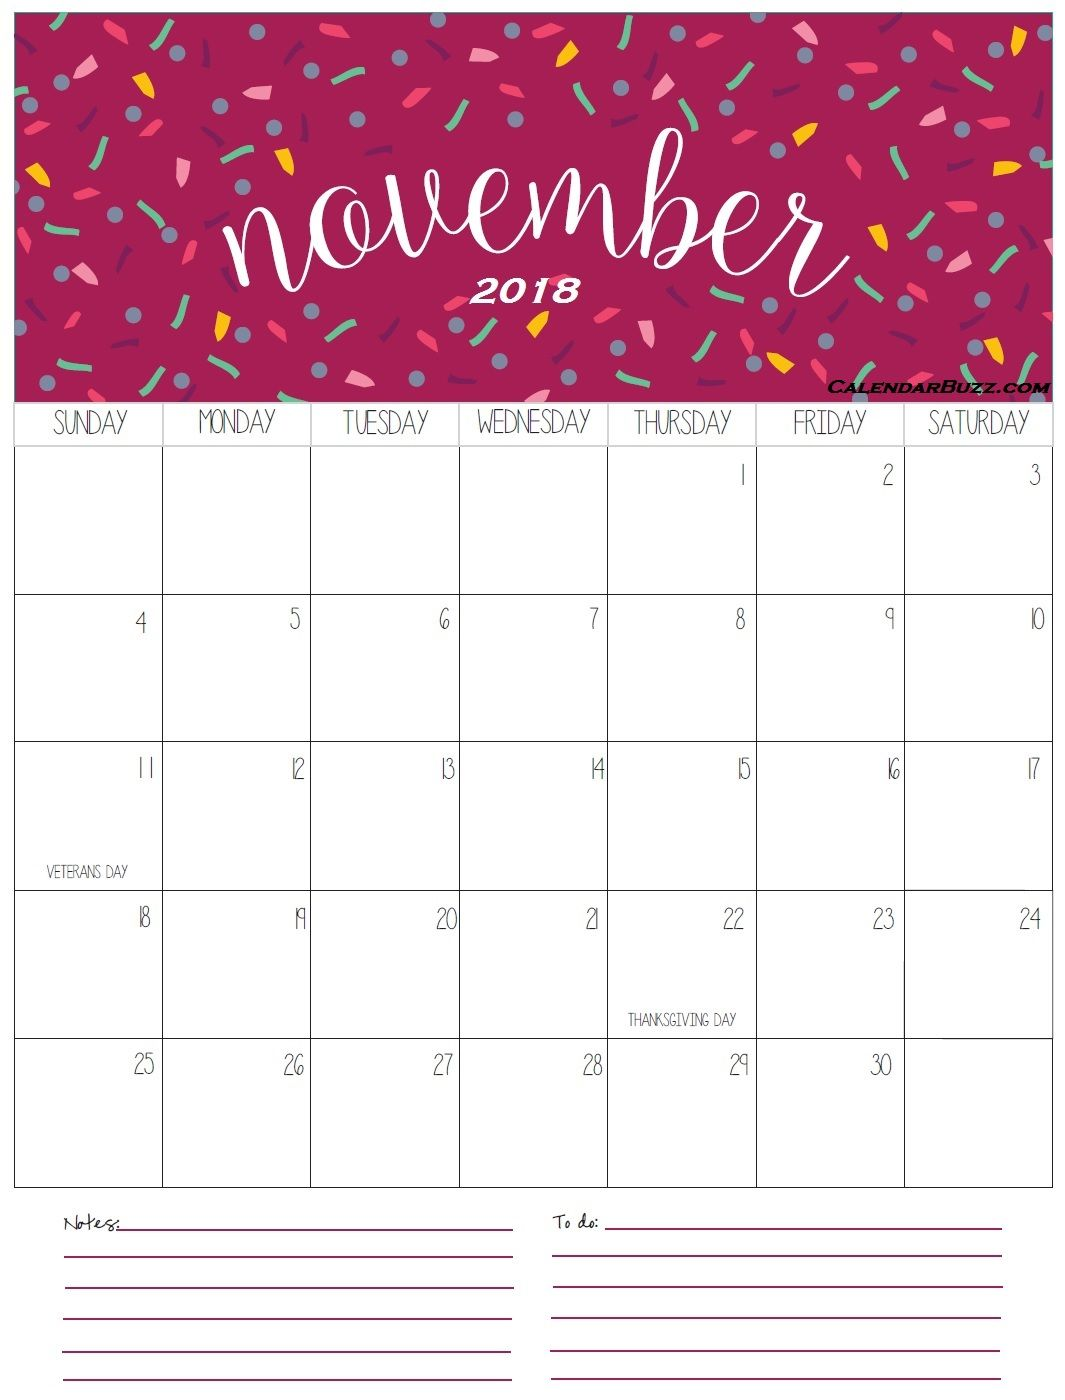 Editable PDF November 2018 Calendar with Holidays Templates Word Excel